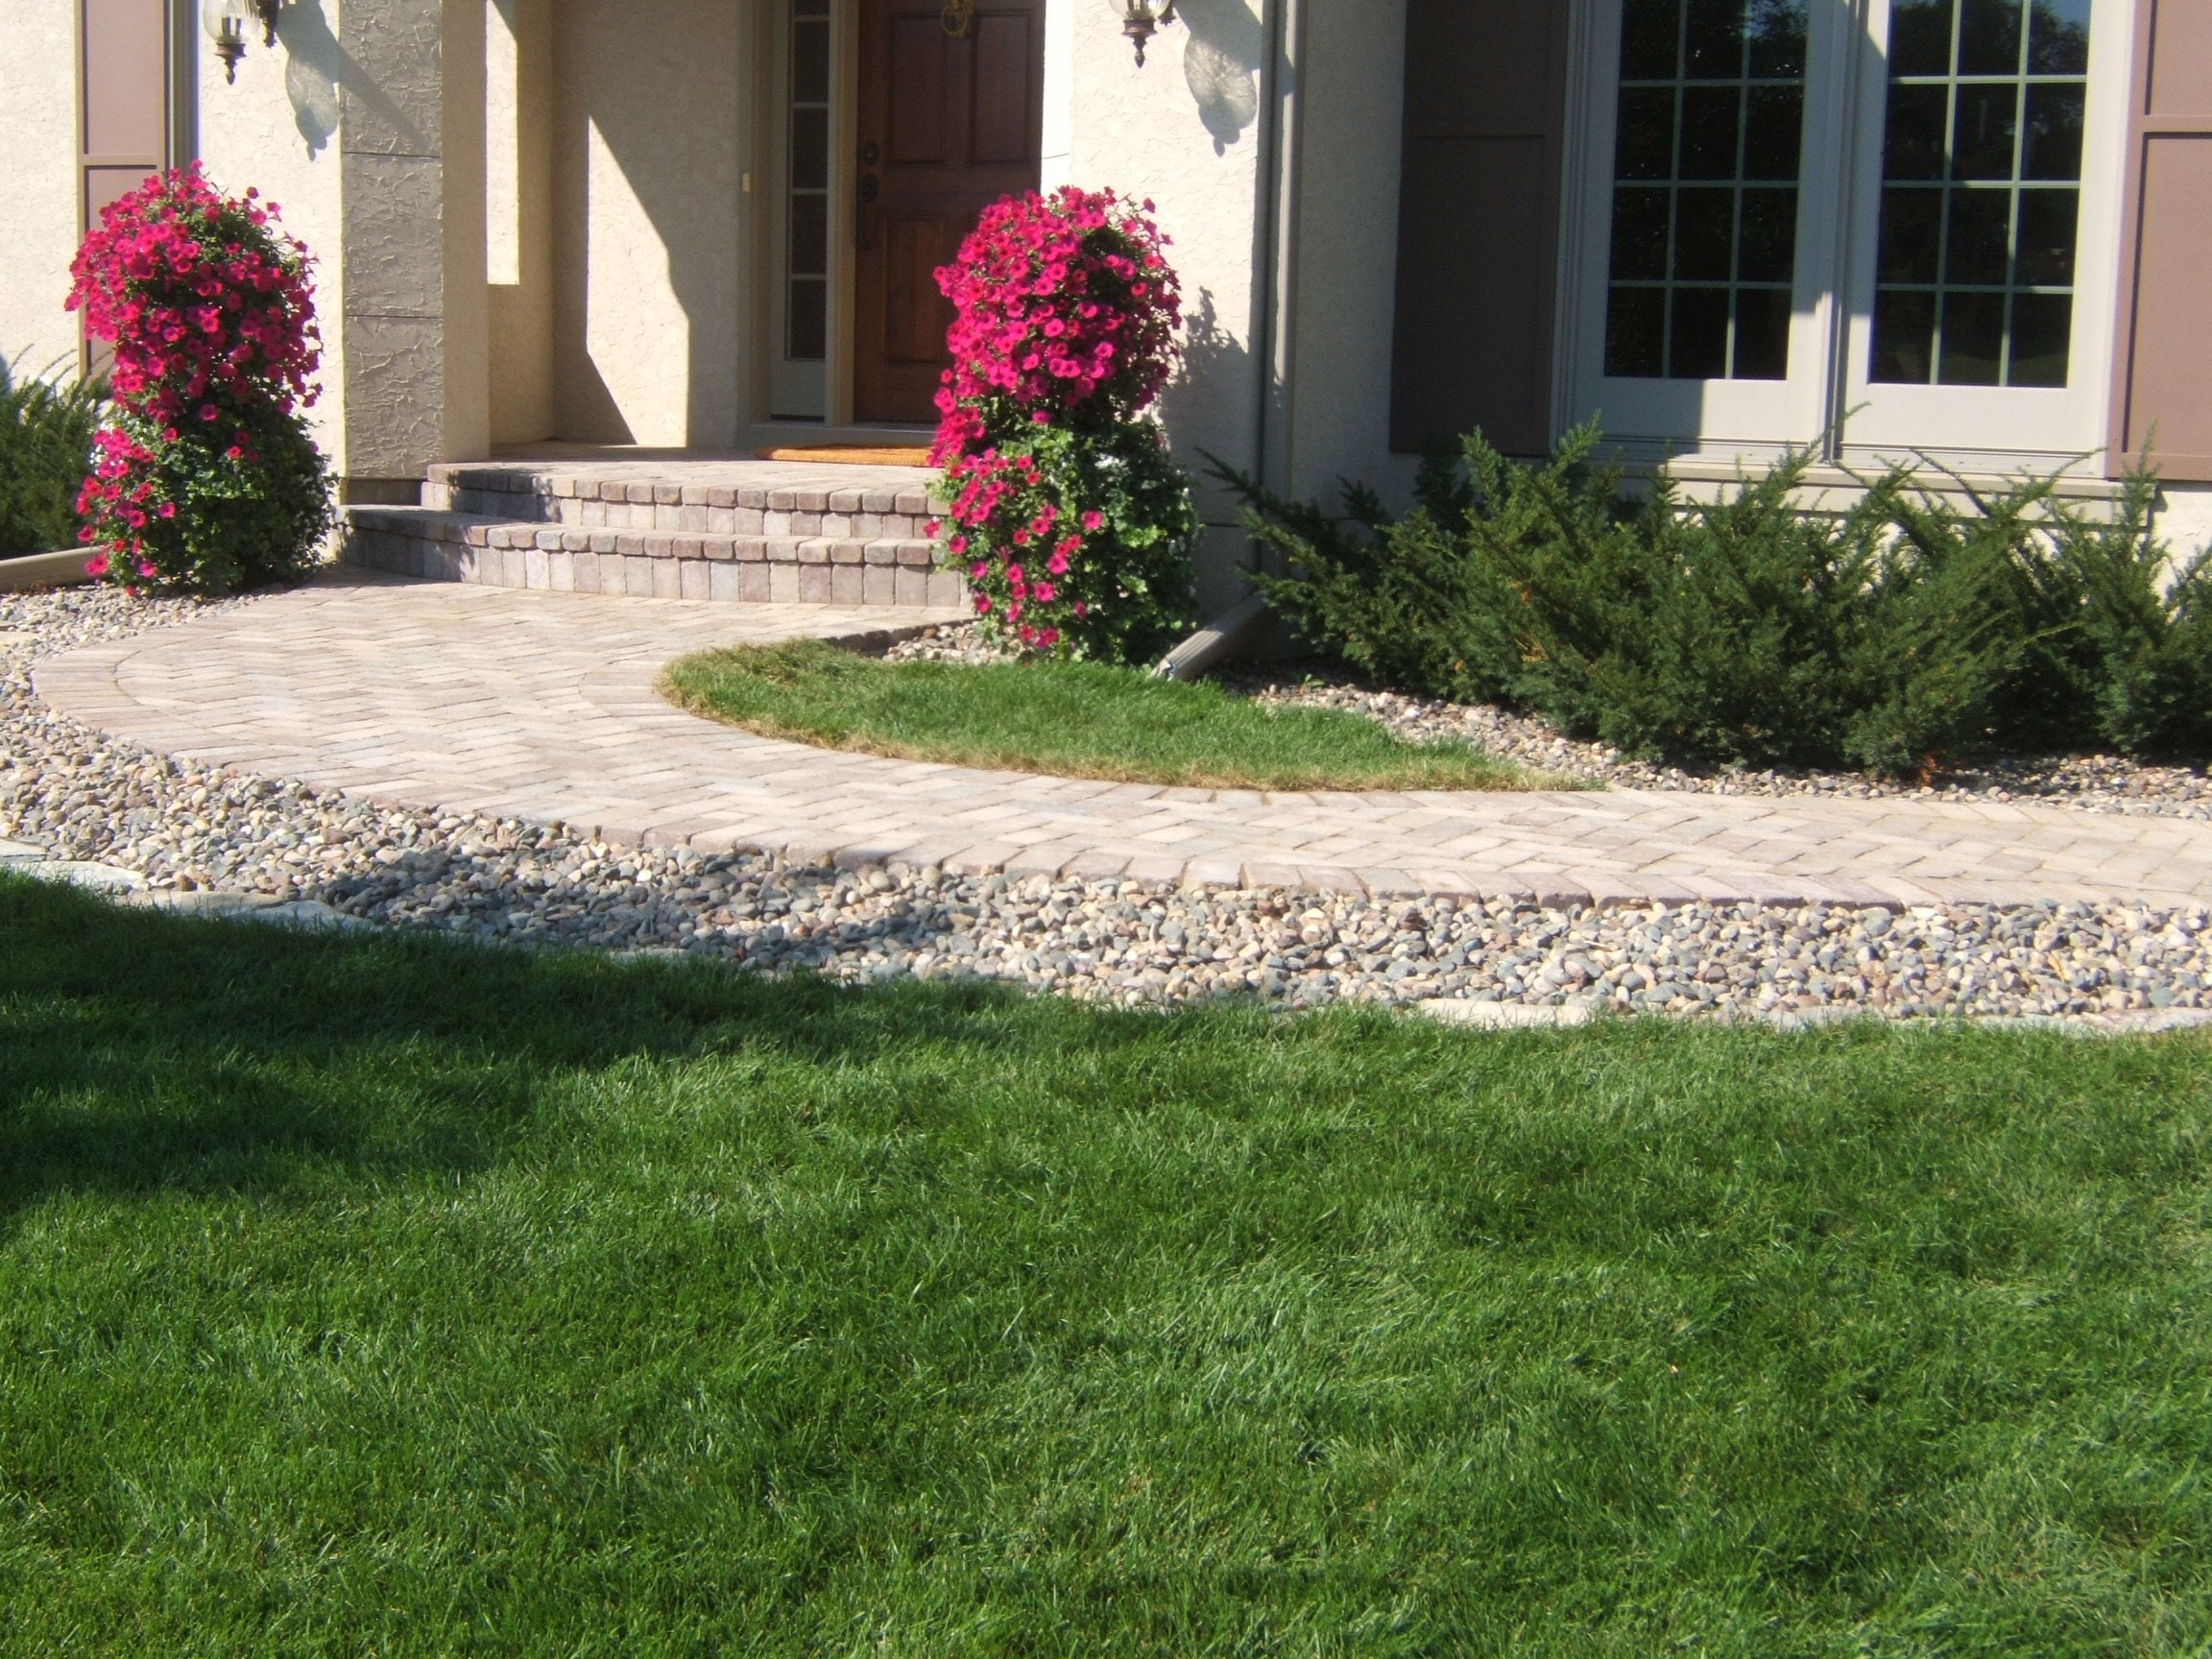 Backyard landscape services provided by Prairie Landscaping & Tree Service